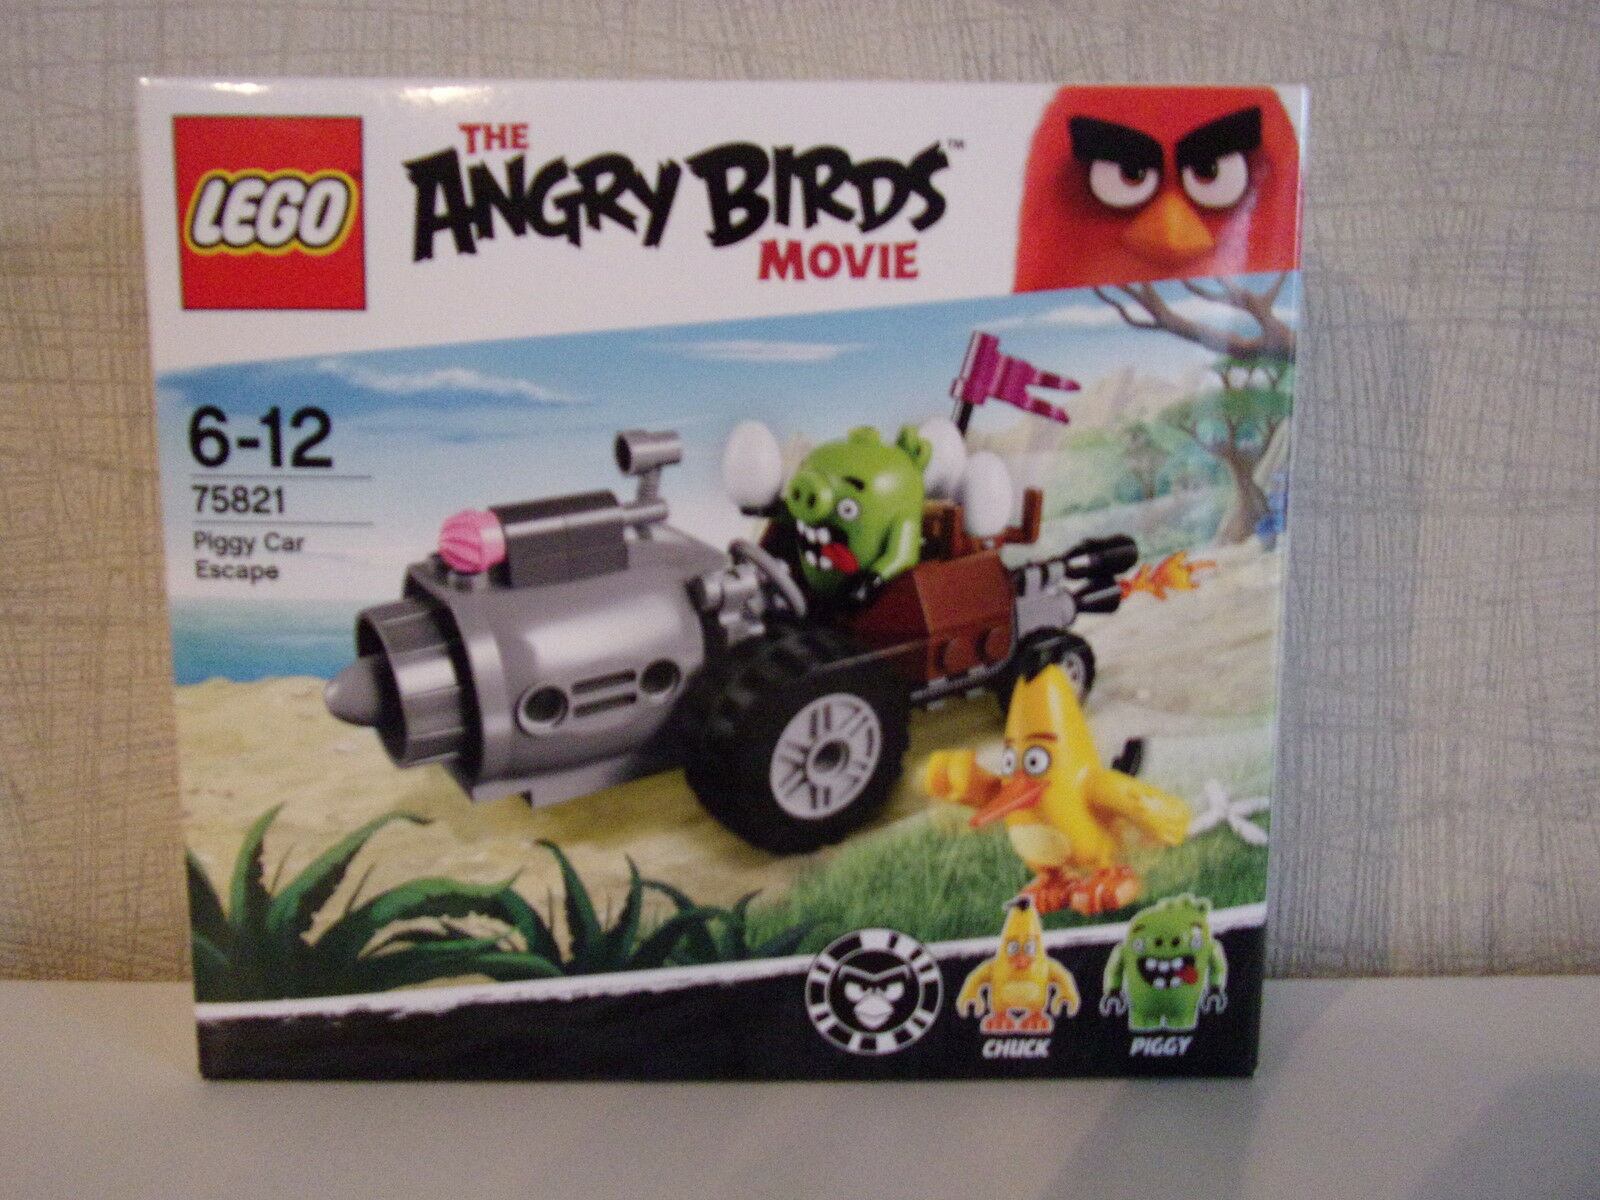 LEGO Angry Birds 75821 ( Piggy Car Escape) - NIP